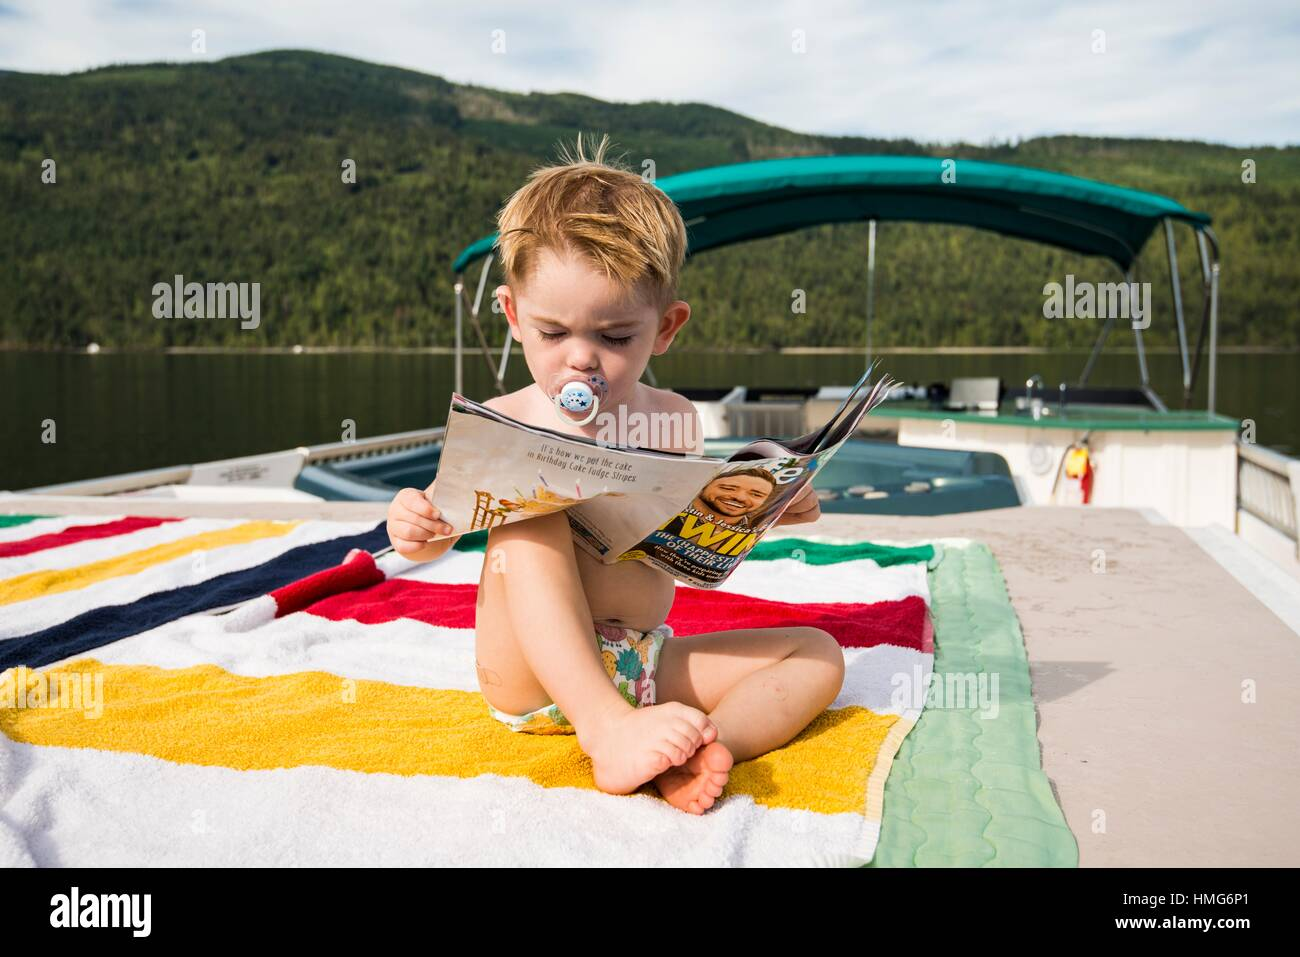 A boy, 2 years, on a house boat on Shushwap Lake in British Columbia, Canada. - Stock Image